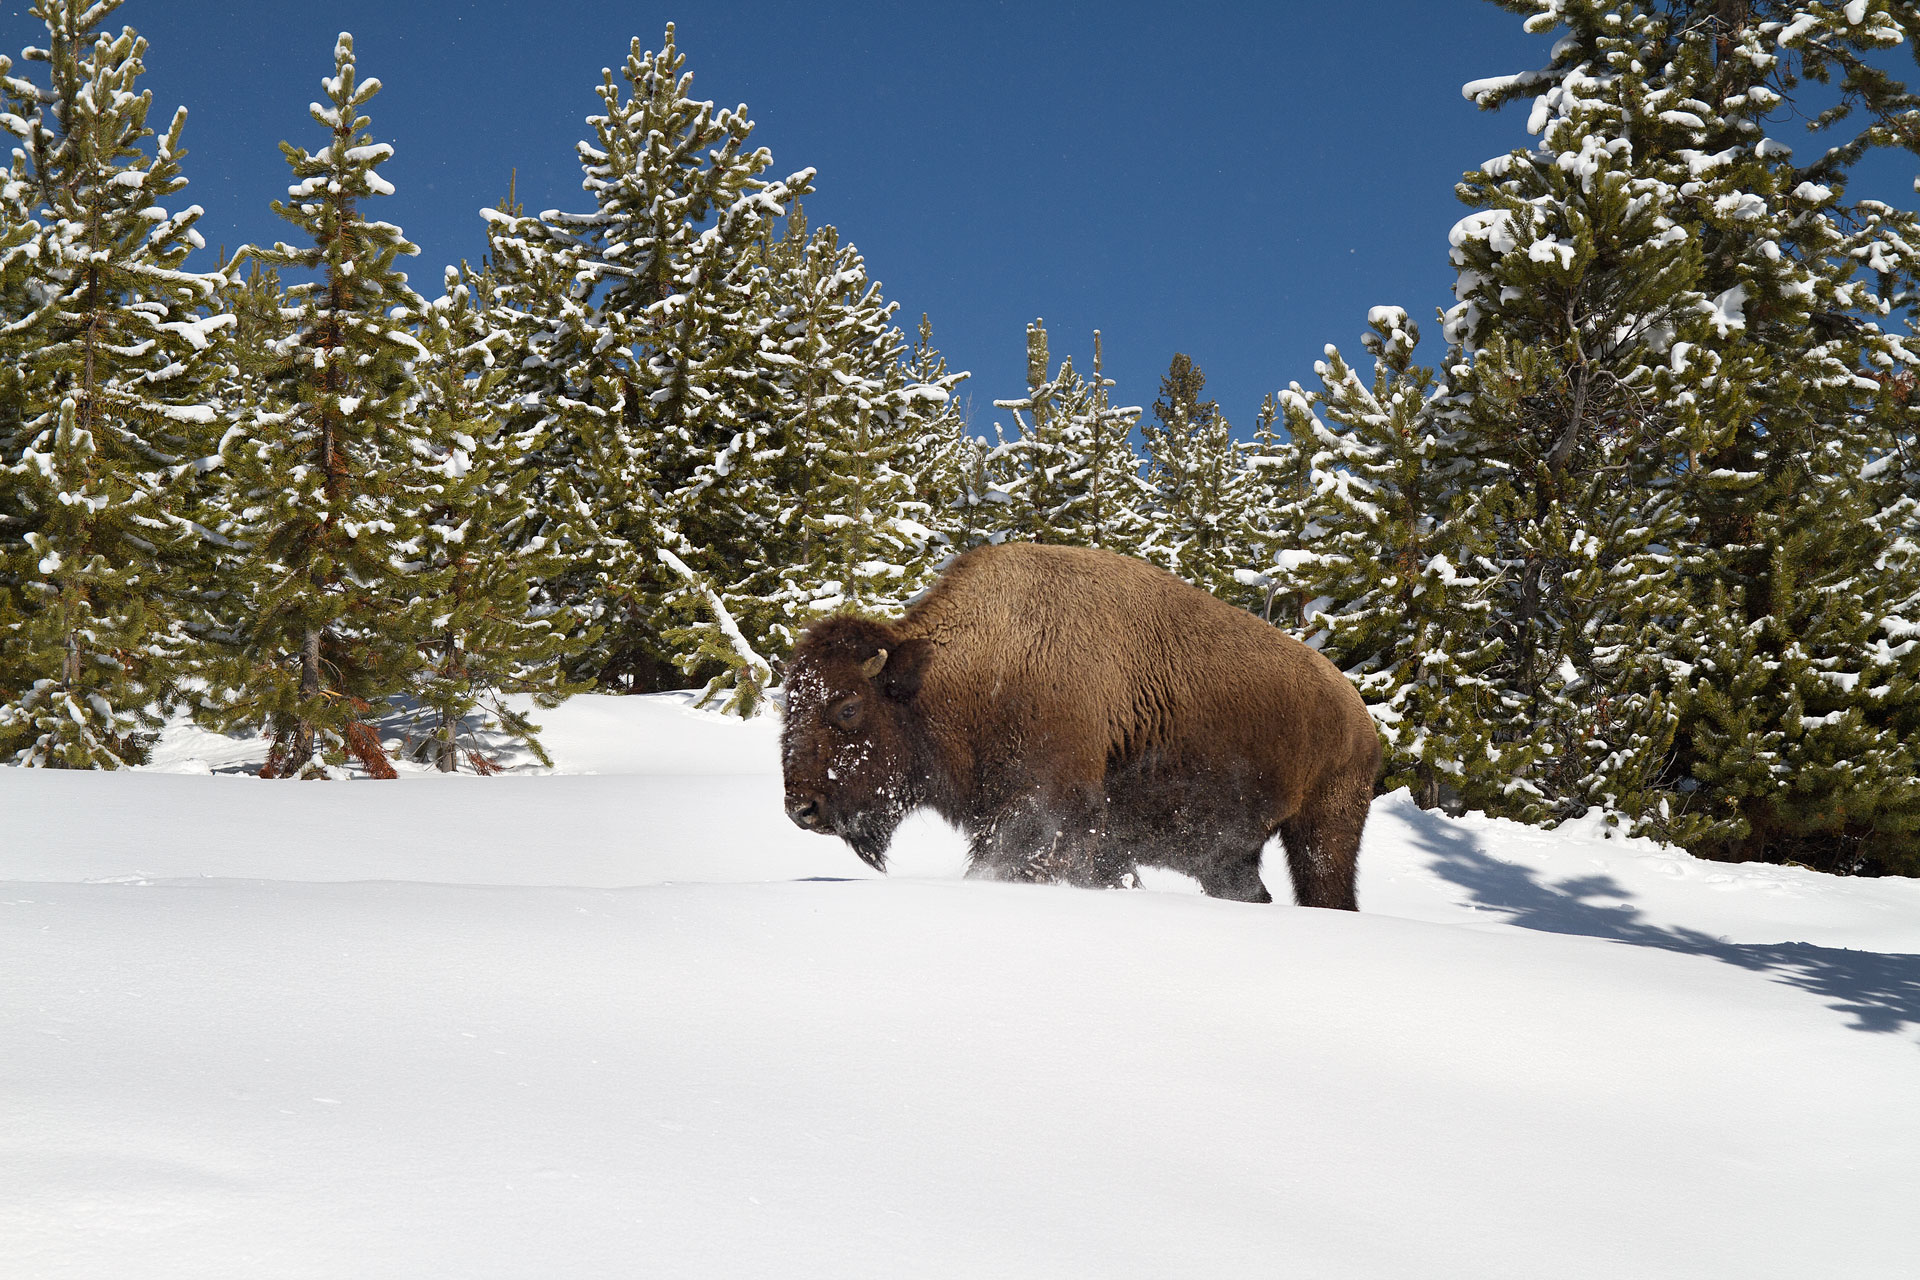 A bison trudges through the snow in Yellowstone Country near Yellowstone National Park